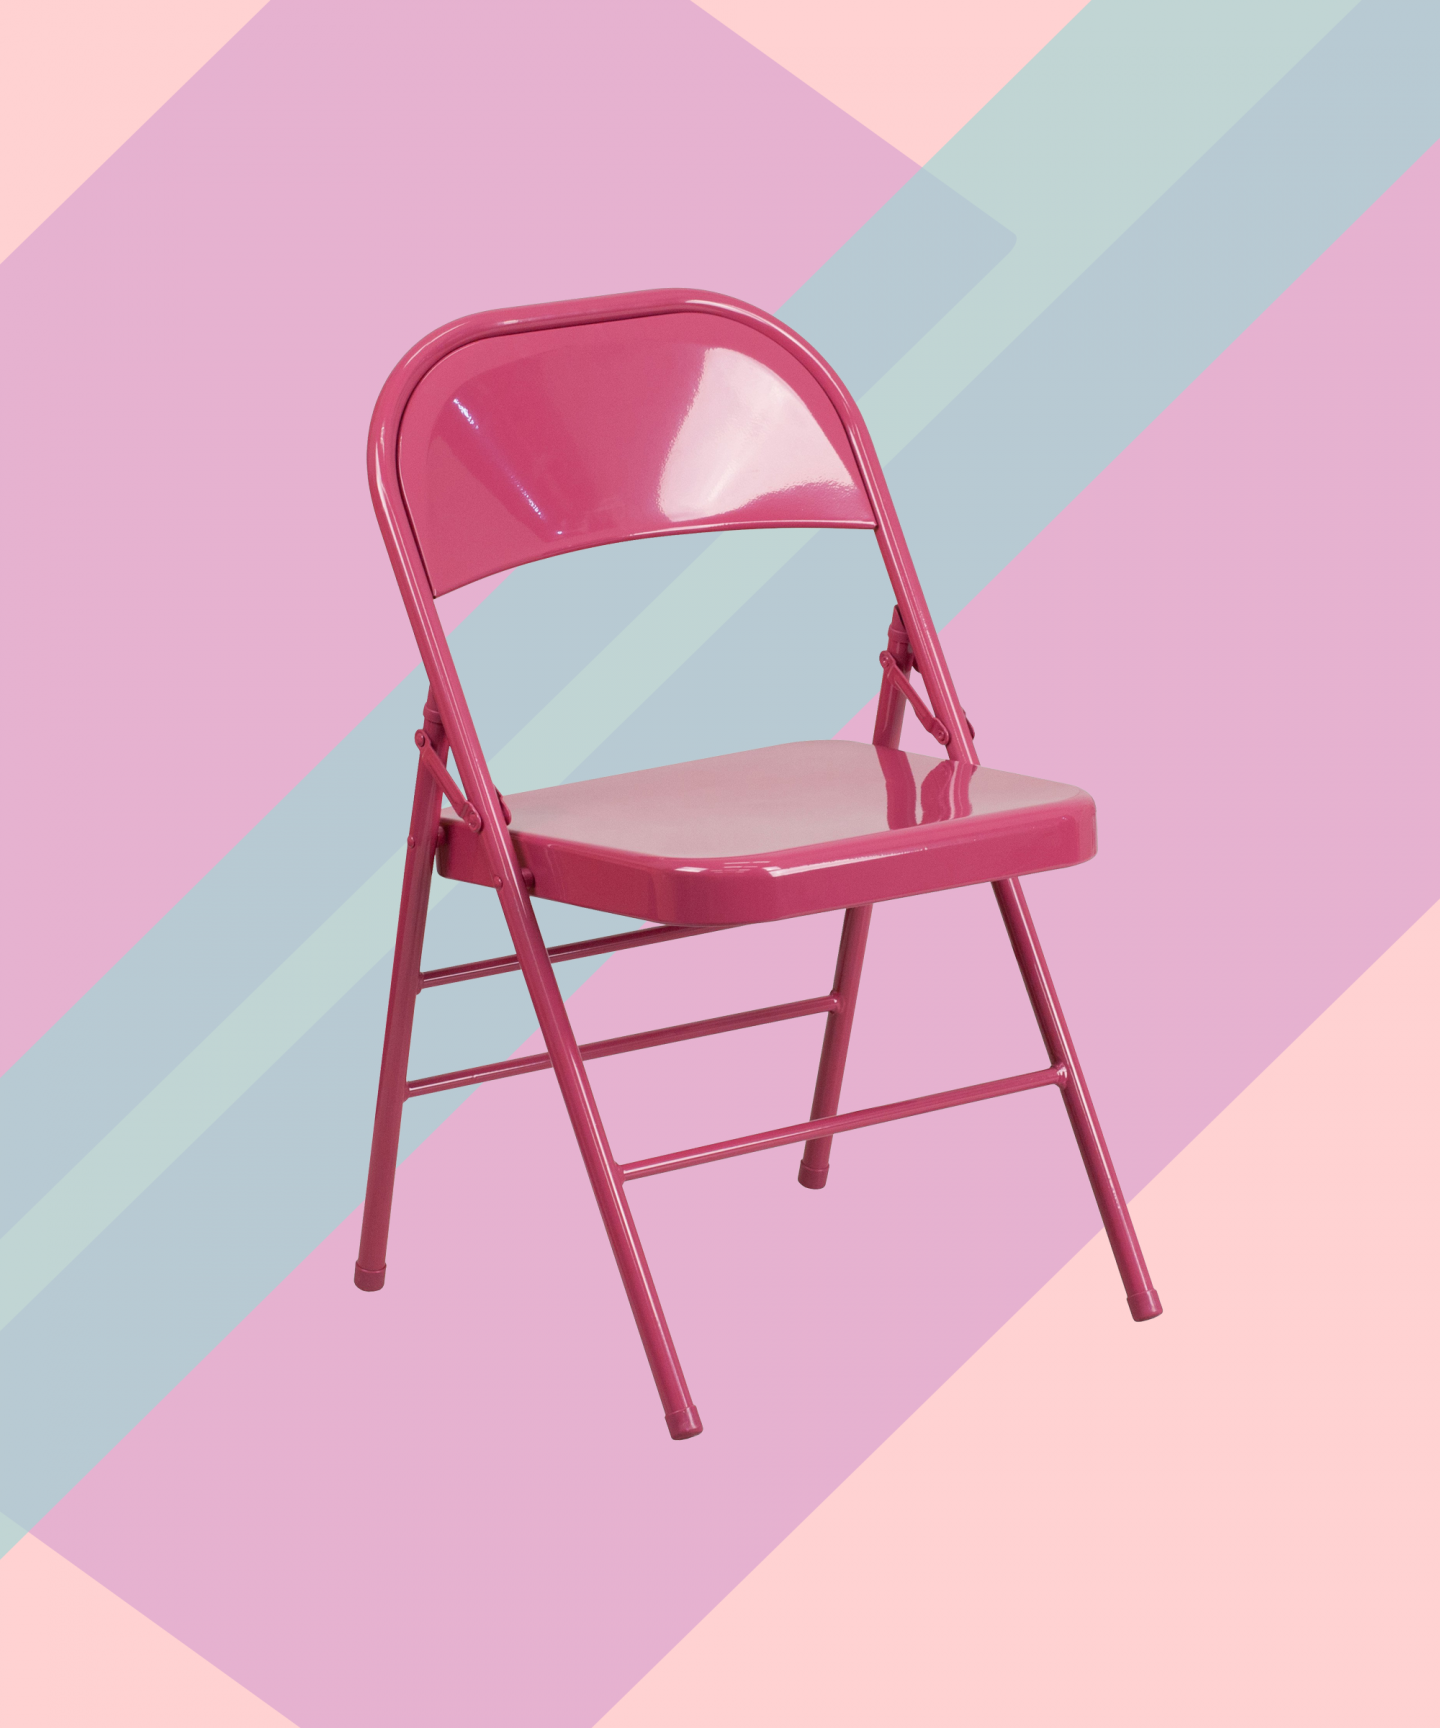 Cute Folding Chairs This Is The Home Product You Need To Have A Fun Summer Outdoors